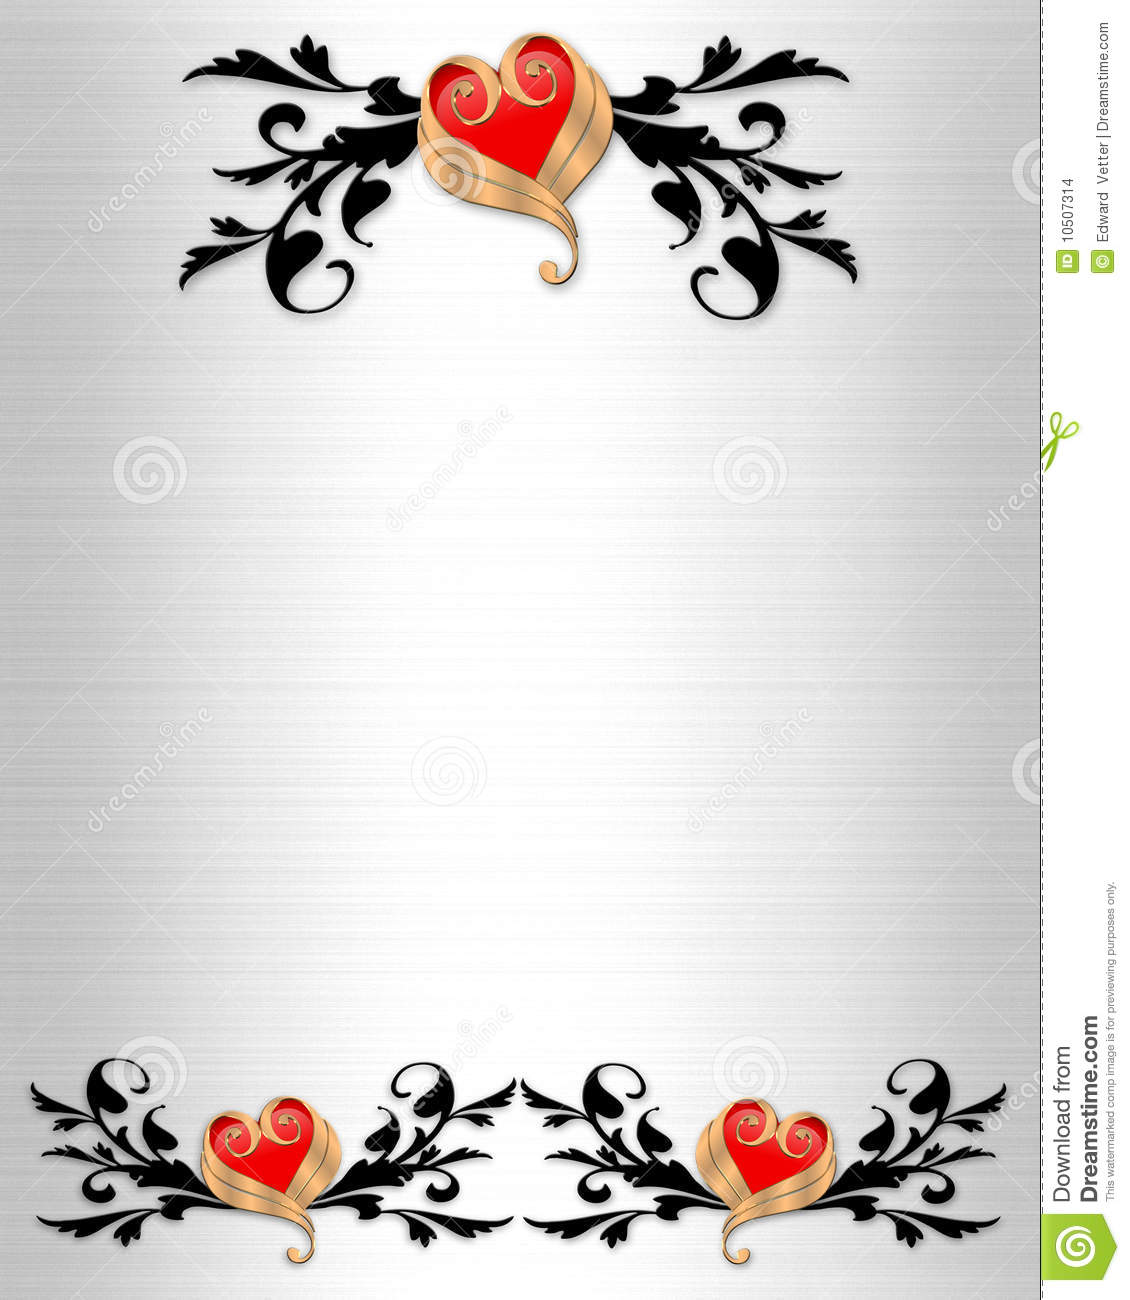 Download Wedding Invitation Elegant Borders Stock Illustration    Illustration Of Detailed, Decorated: 10507314